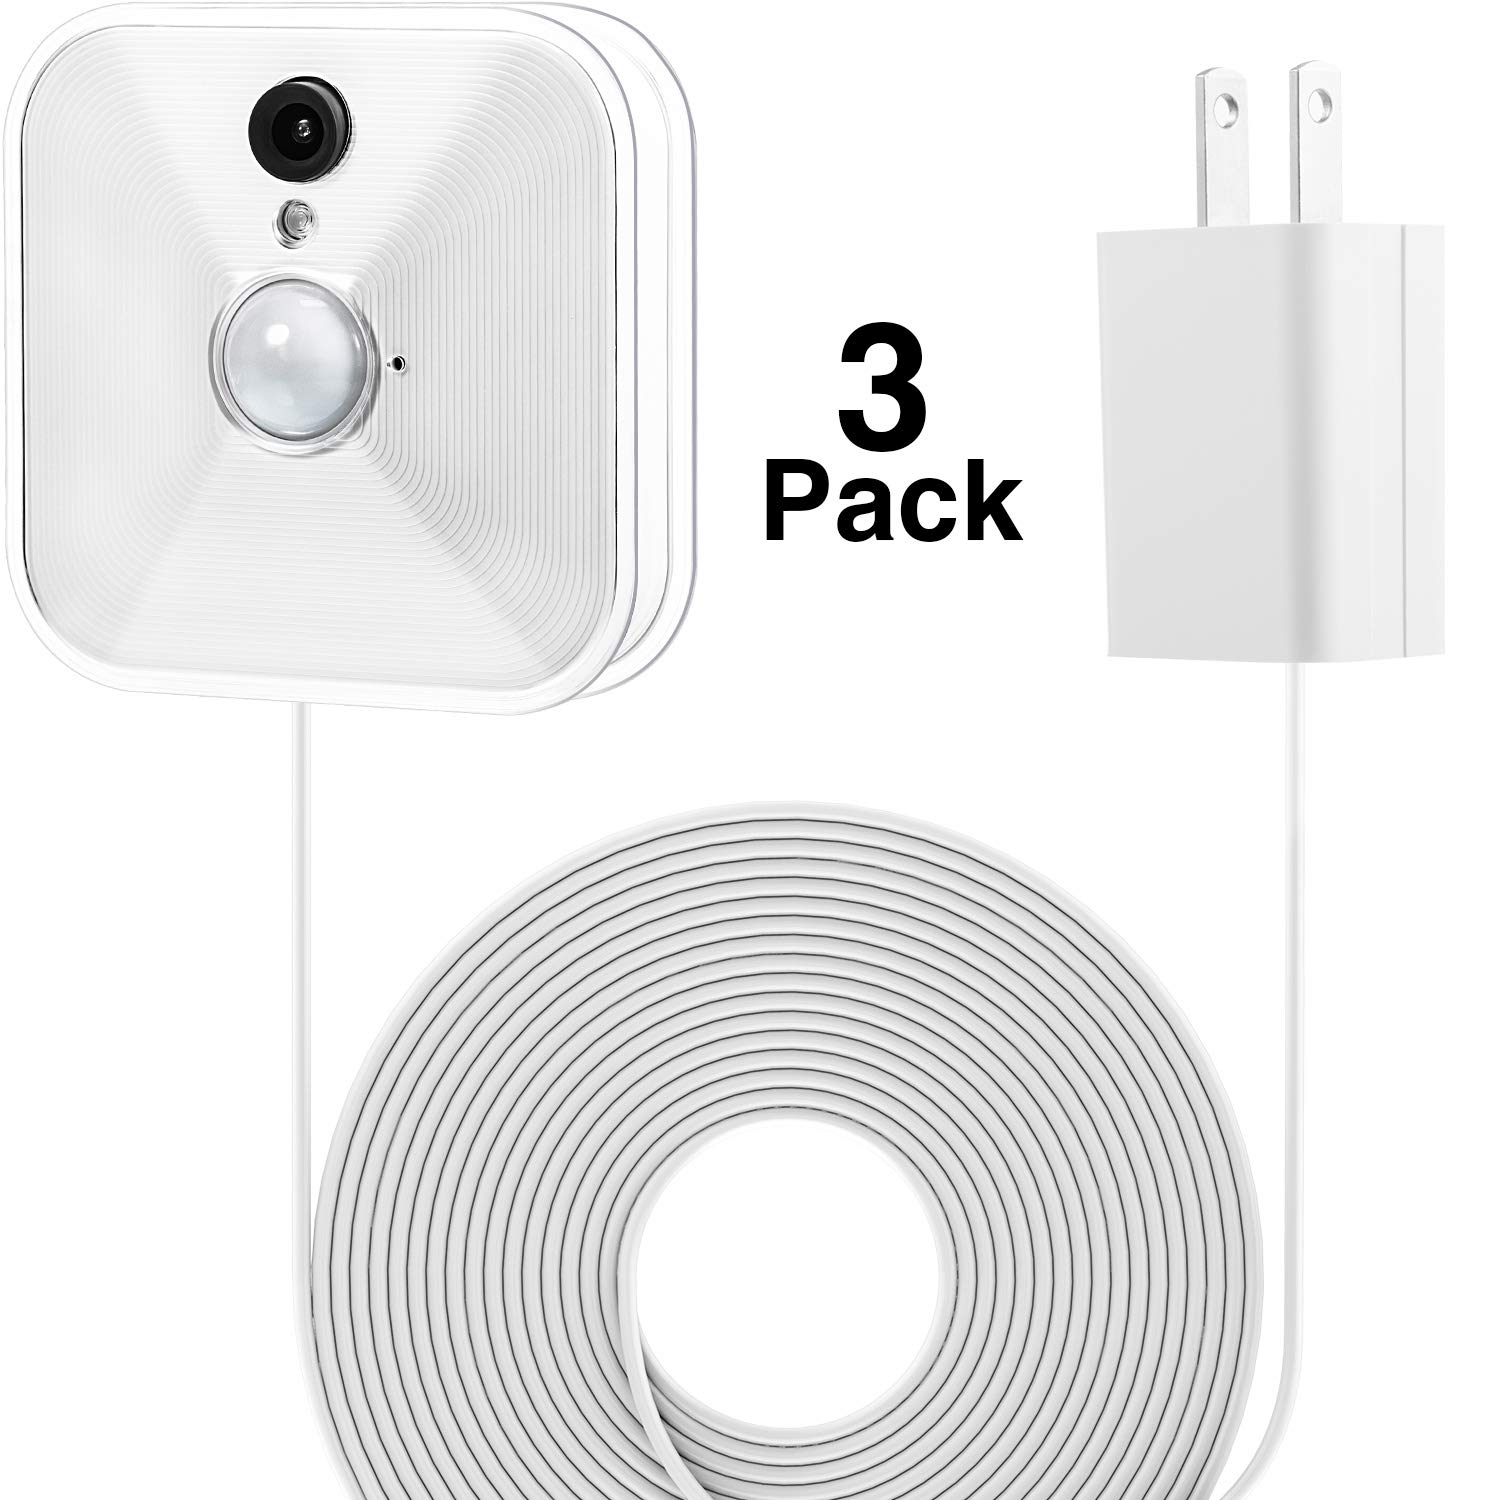 Power Adapter with 20 ft/6 m Weatherproof Cable for Blink Outdoor XT XT2/Indoor Home Security Camera, Continuously Operate Blink Security Camera, No Need to Change The Battery (3 Pack White) by BBTO